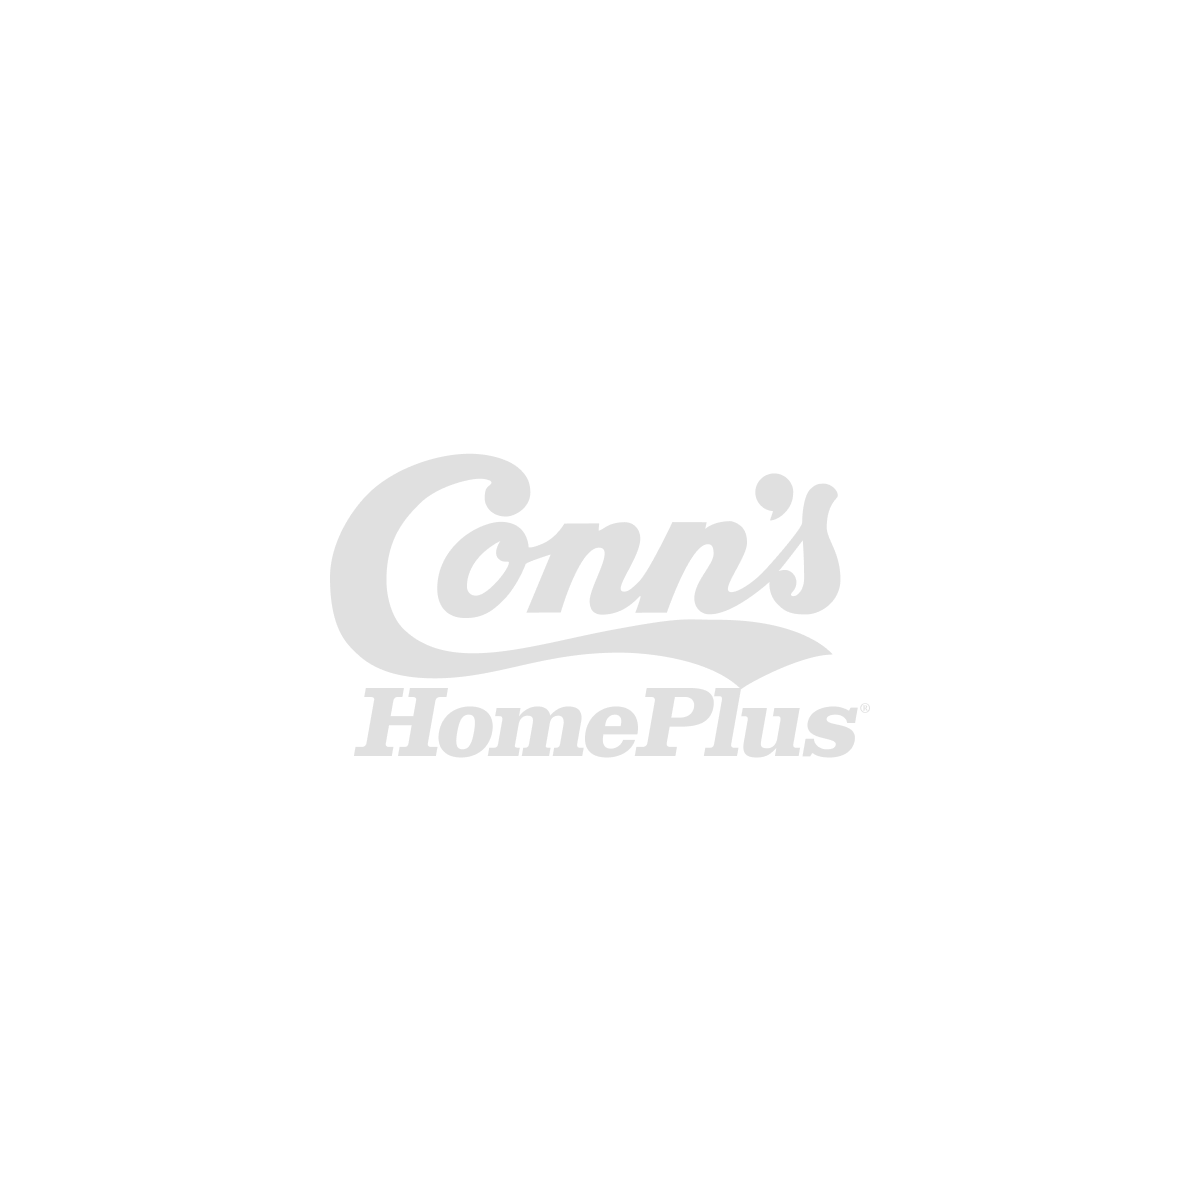 Bronze crossed arm table lamp l32097cn decor accessories bronze crossed arm table lamp l32097cn aloadofball Image collections